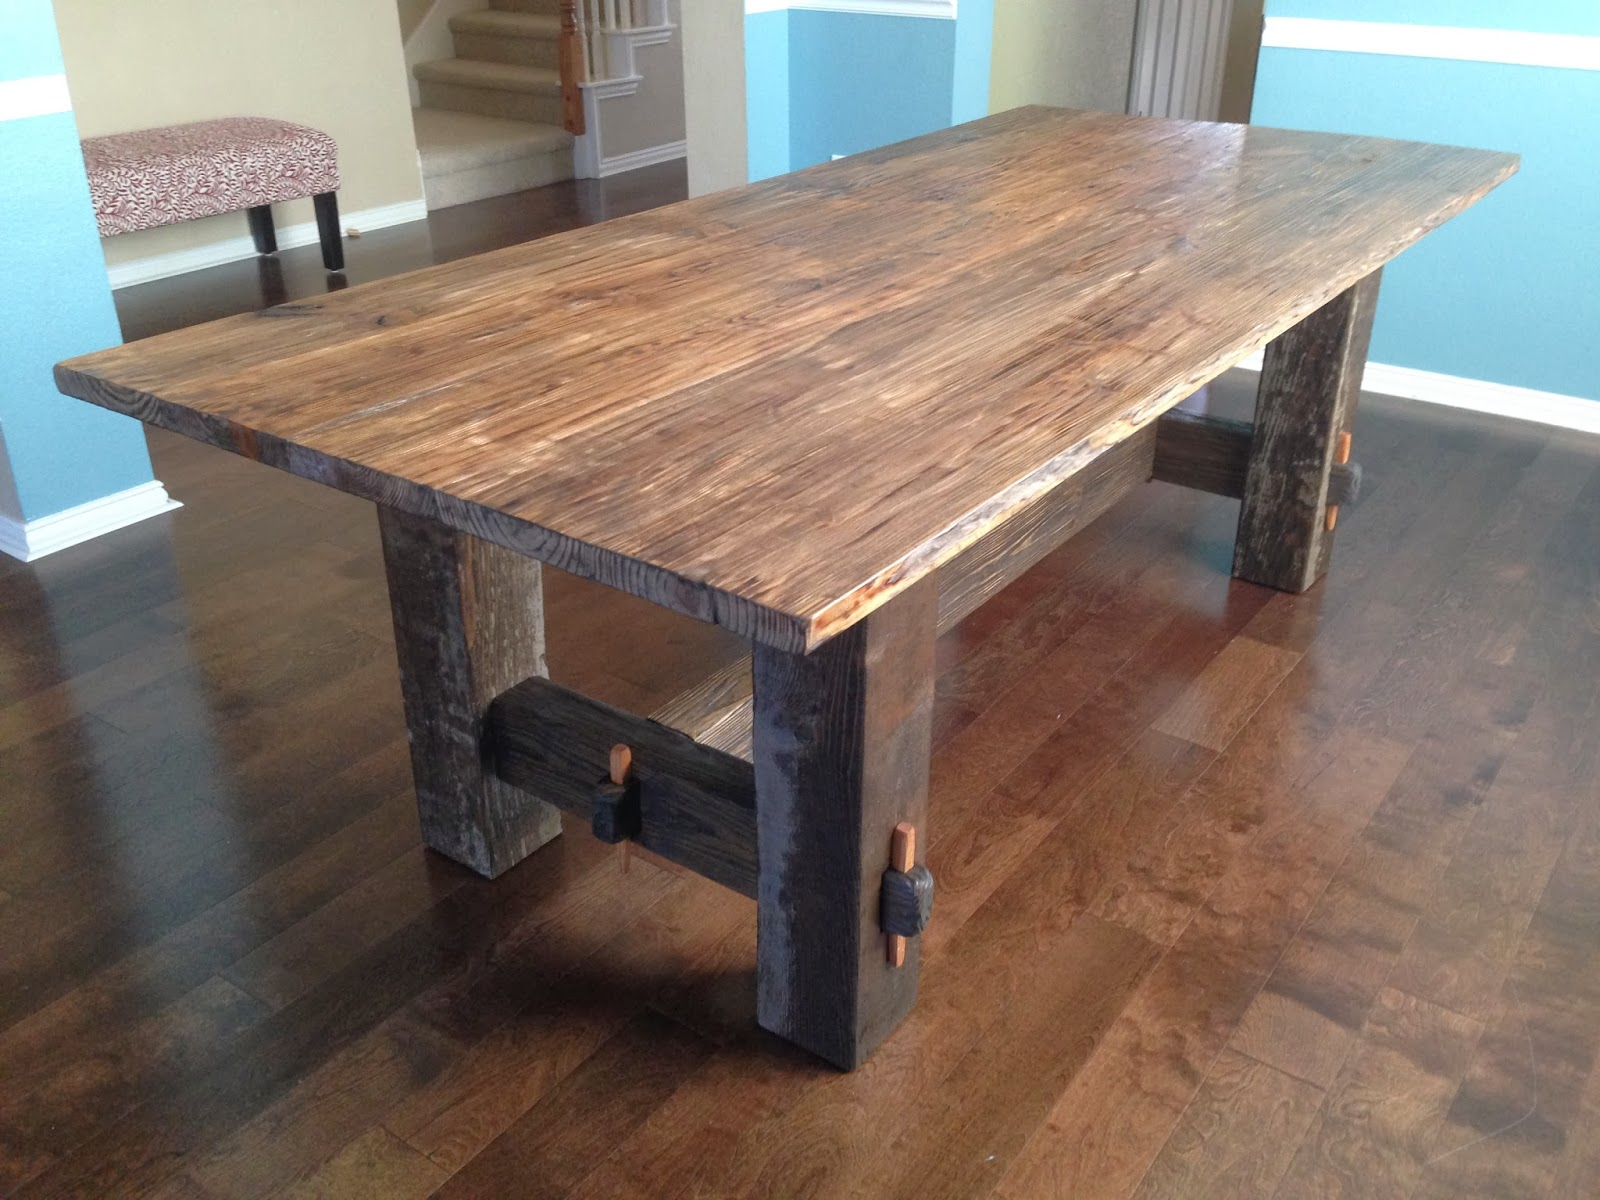 Rock solid tables the holman farmhouse table 1400 for Farmhouse table plans with x legs